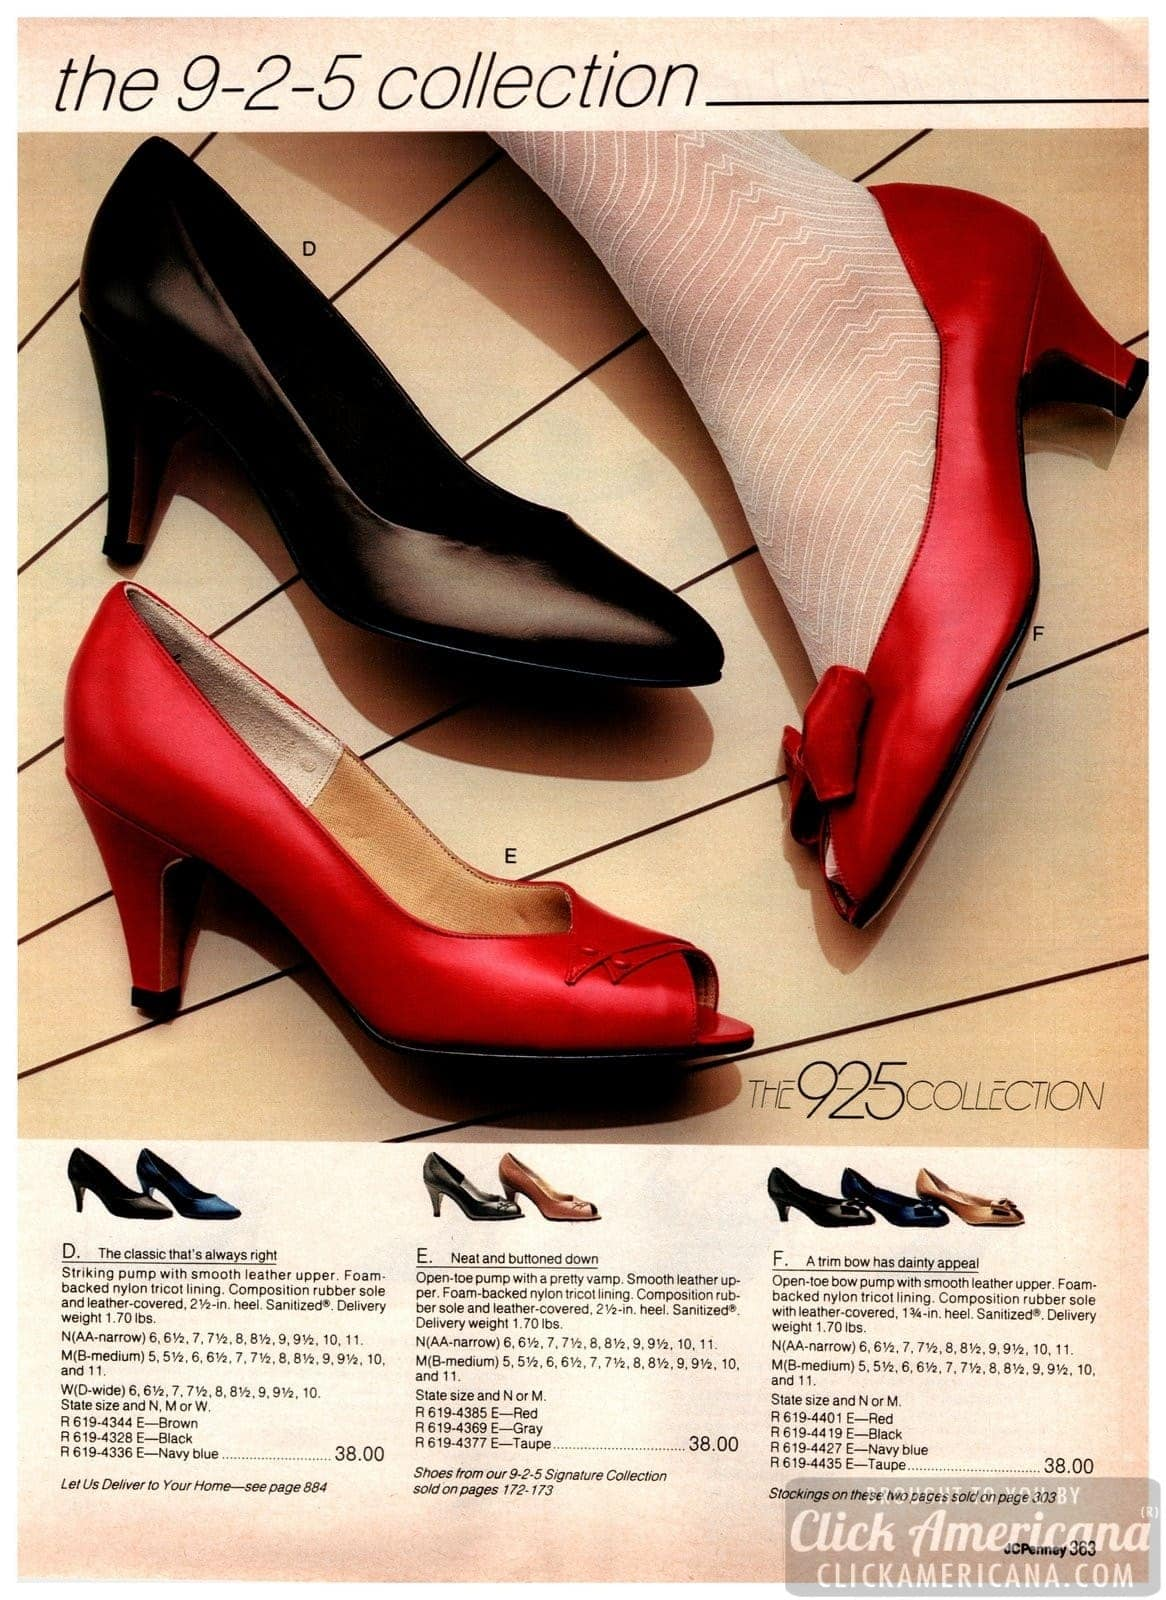 Work shoes and heels from the eighties: classic pumps, open-toe pumps and medium-height heels